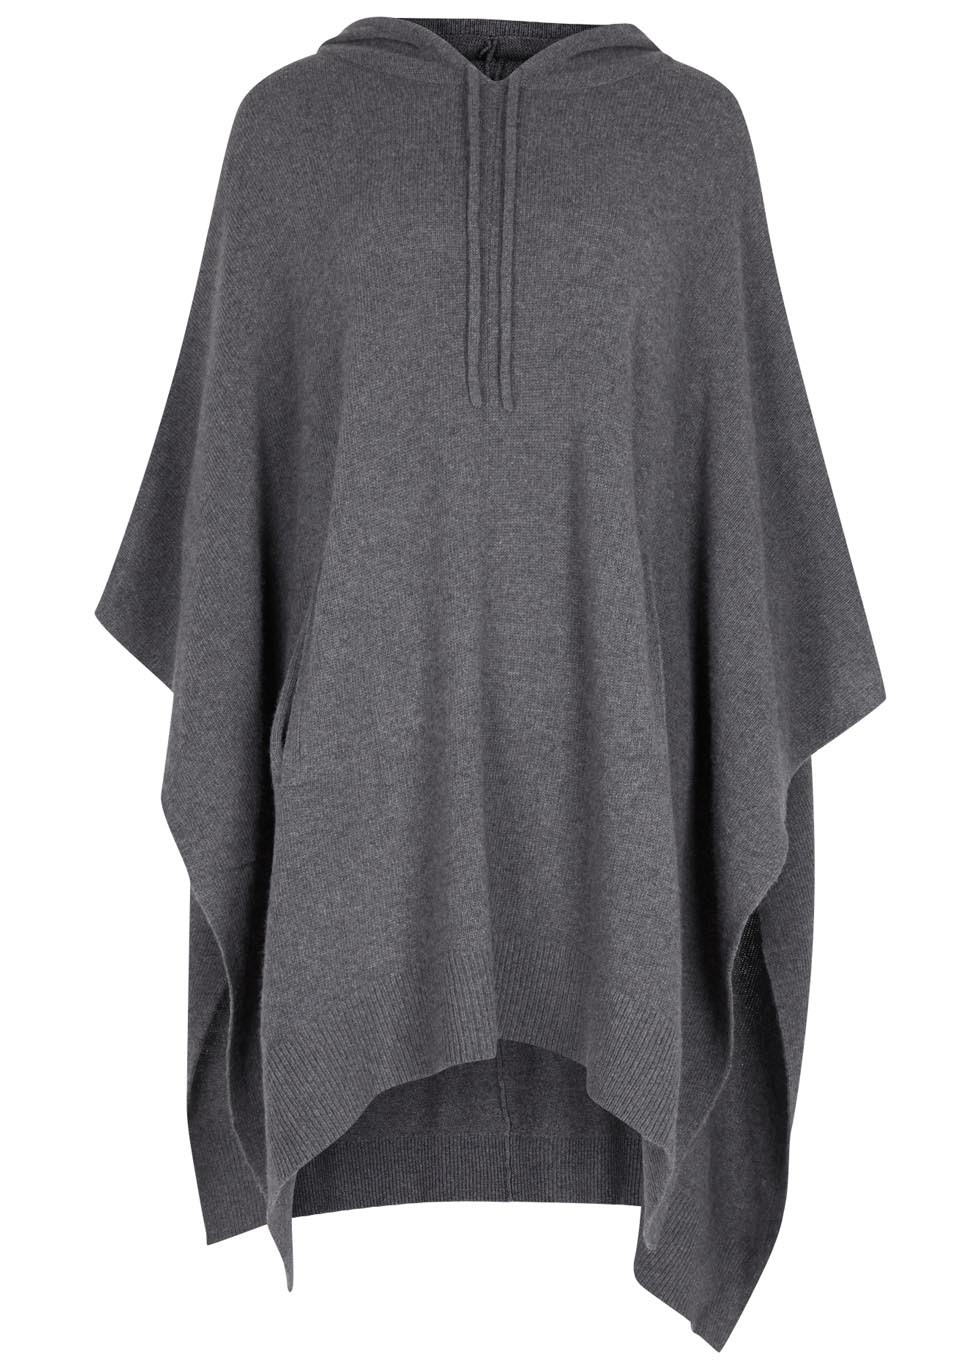 Grey Hooded Wool Blend Poncho - sleeve style: dolman/batwing; pattern: plain; neckline: high neck; length: below the bottom; style: poncho; predominant colour: charcoal; occasions: casual; fibres: wool - mix; fit: loose; sleeve length: long sleeve; texture group: knits/crochet; pattern type: knitted - fine stitch; season: a/w 2015; wardrobe: highlight